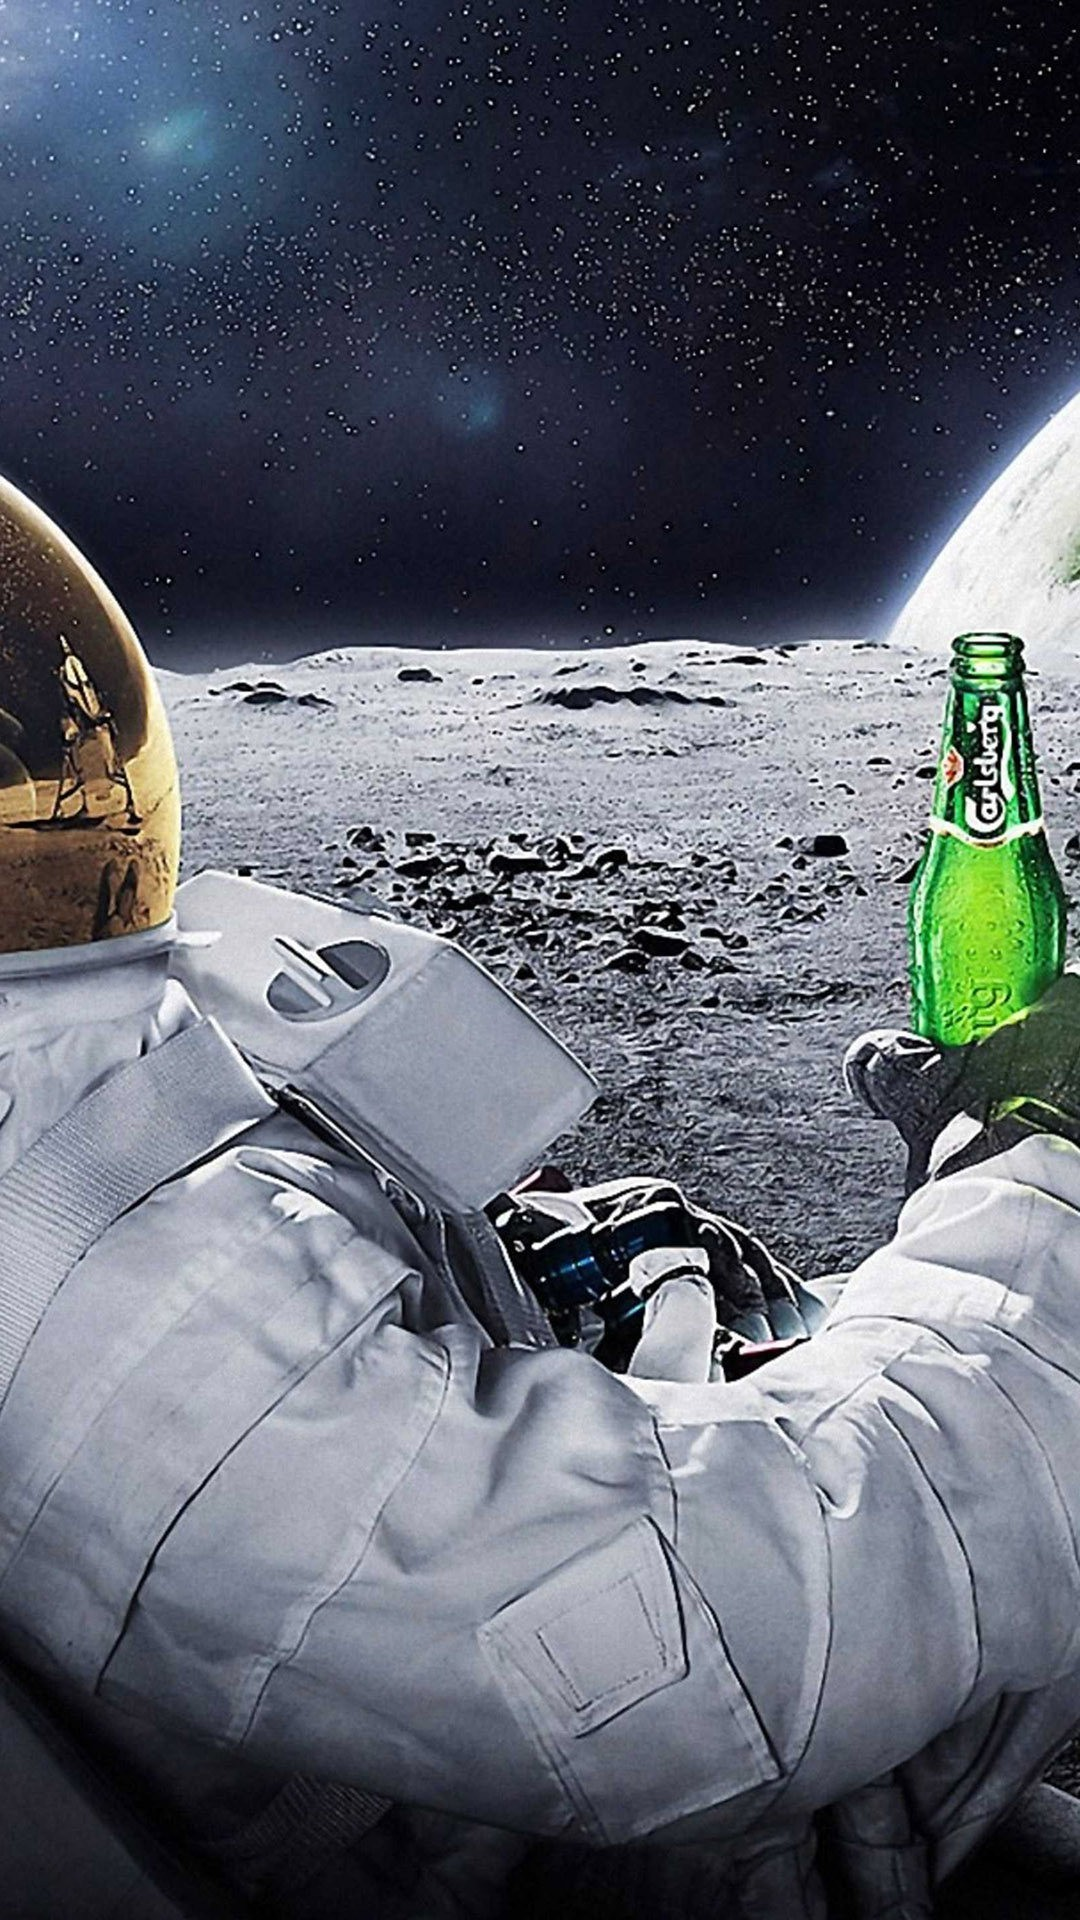 astronaut drinking miller lite beer - photo #15